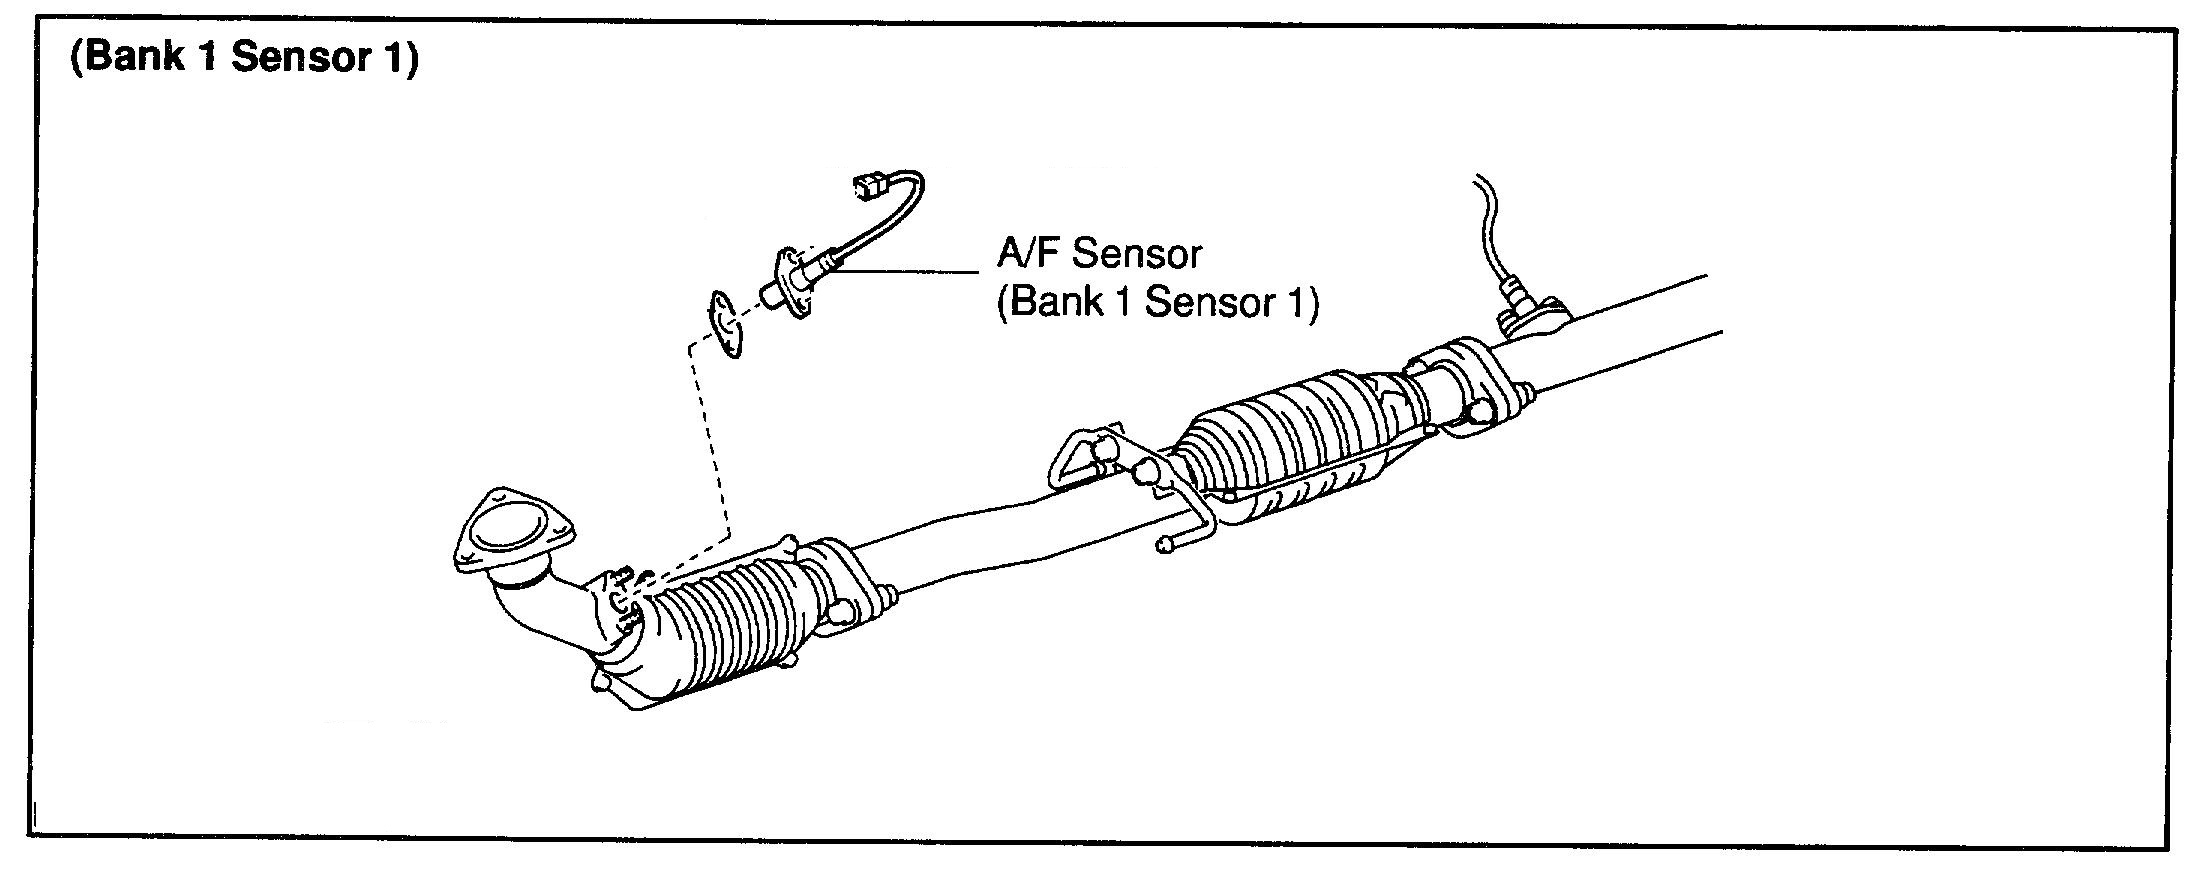 P 0996b43f80378dce furthermore 2000 Toyota Tundra Bank 2 Sensor 1 Location moreover 7wwb8 Toyota Tundra Sr5 Knock Sensor Located in addition 571ds Toyota Avalon Xls 2000 Avalon Check Engine Light Codes in addition P0420 2004 toyota highlander. on toyota 4runner bank 1 sensor location